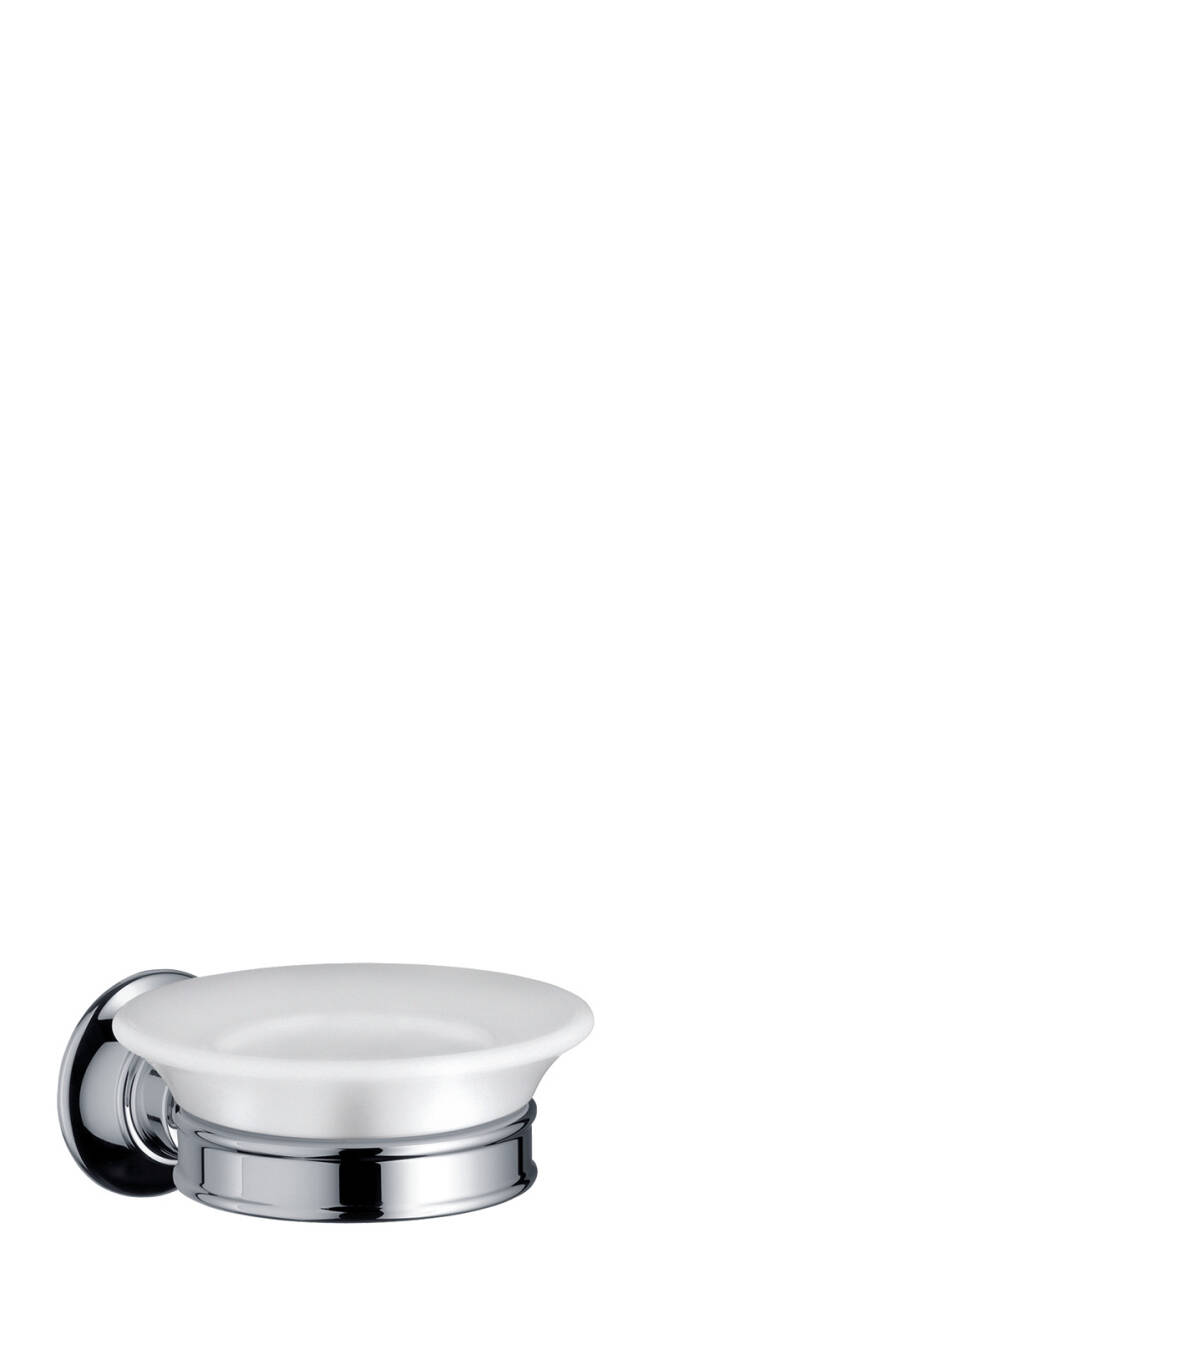 Soap dish, Chrome, 42033000